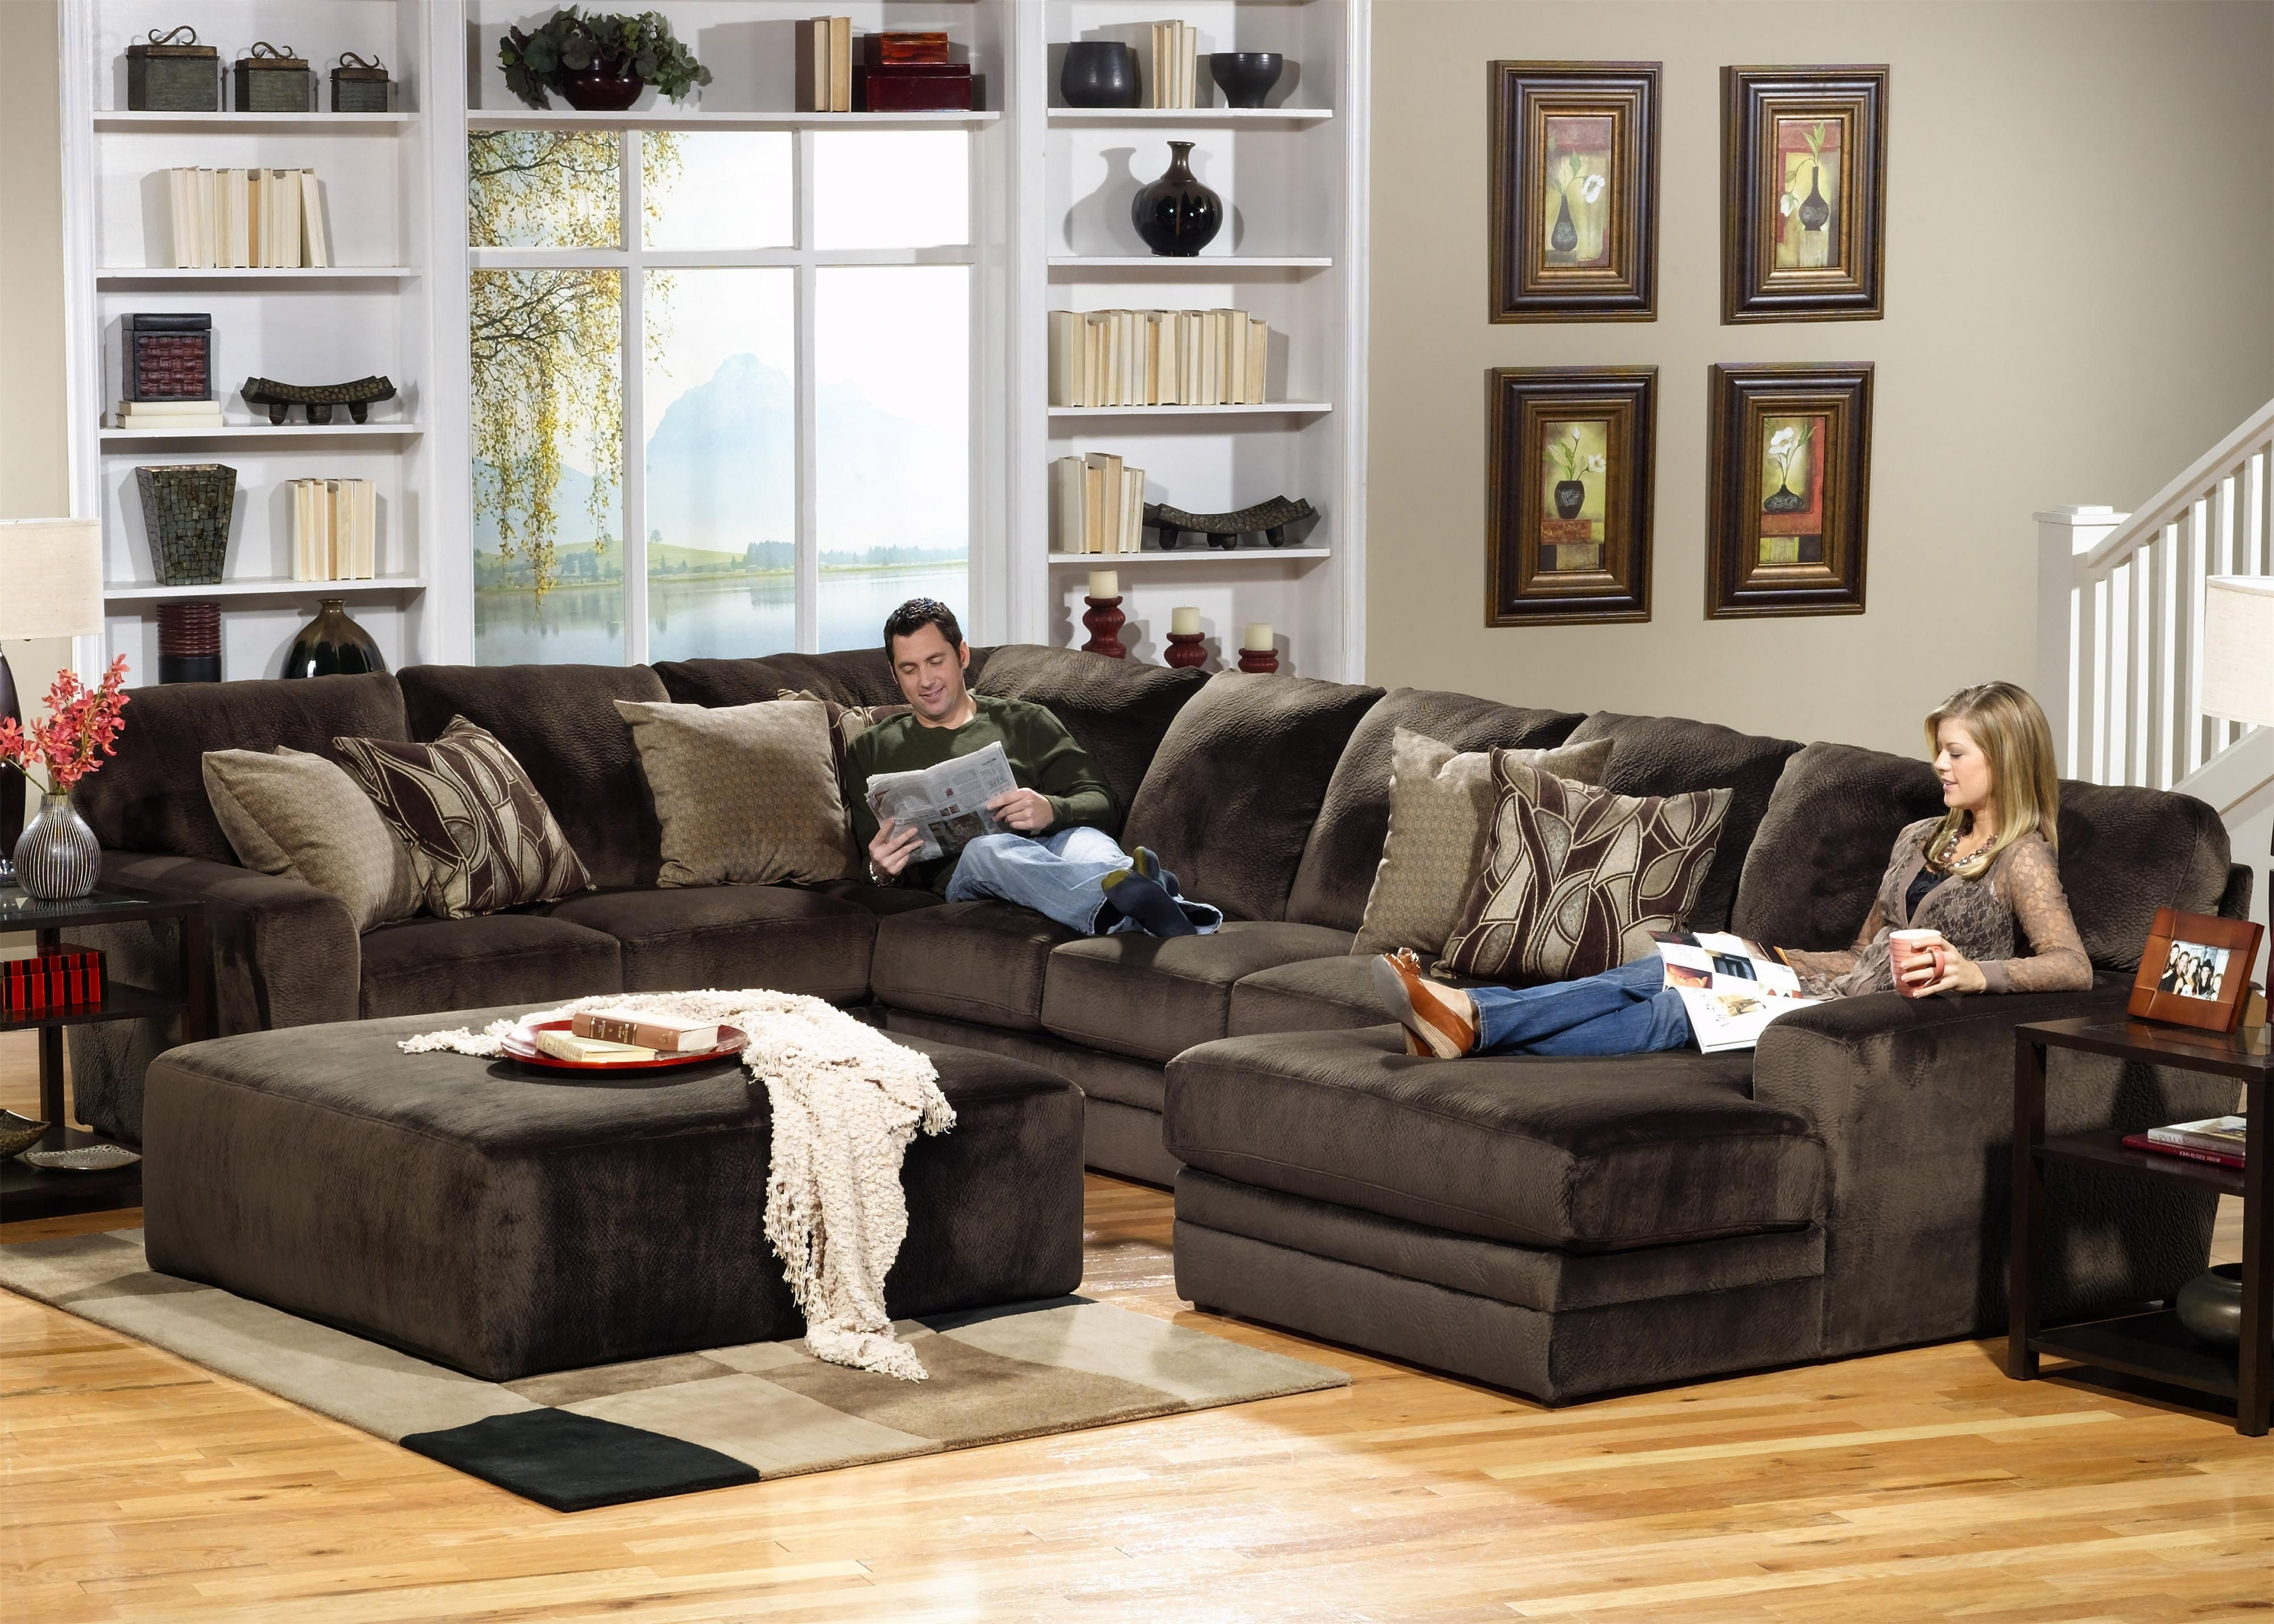 4377 Everest 3 Piece Sectional With Lsf Sectionjackson Furniture For Dayton Ohio Sectional Sofas (Image 1 of 10)